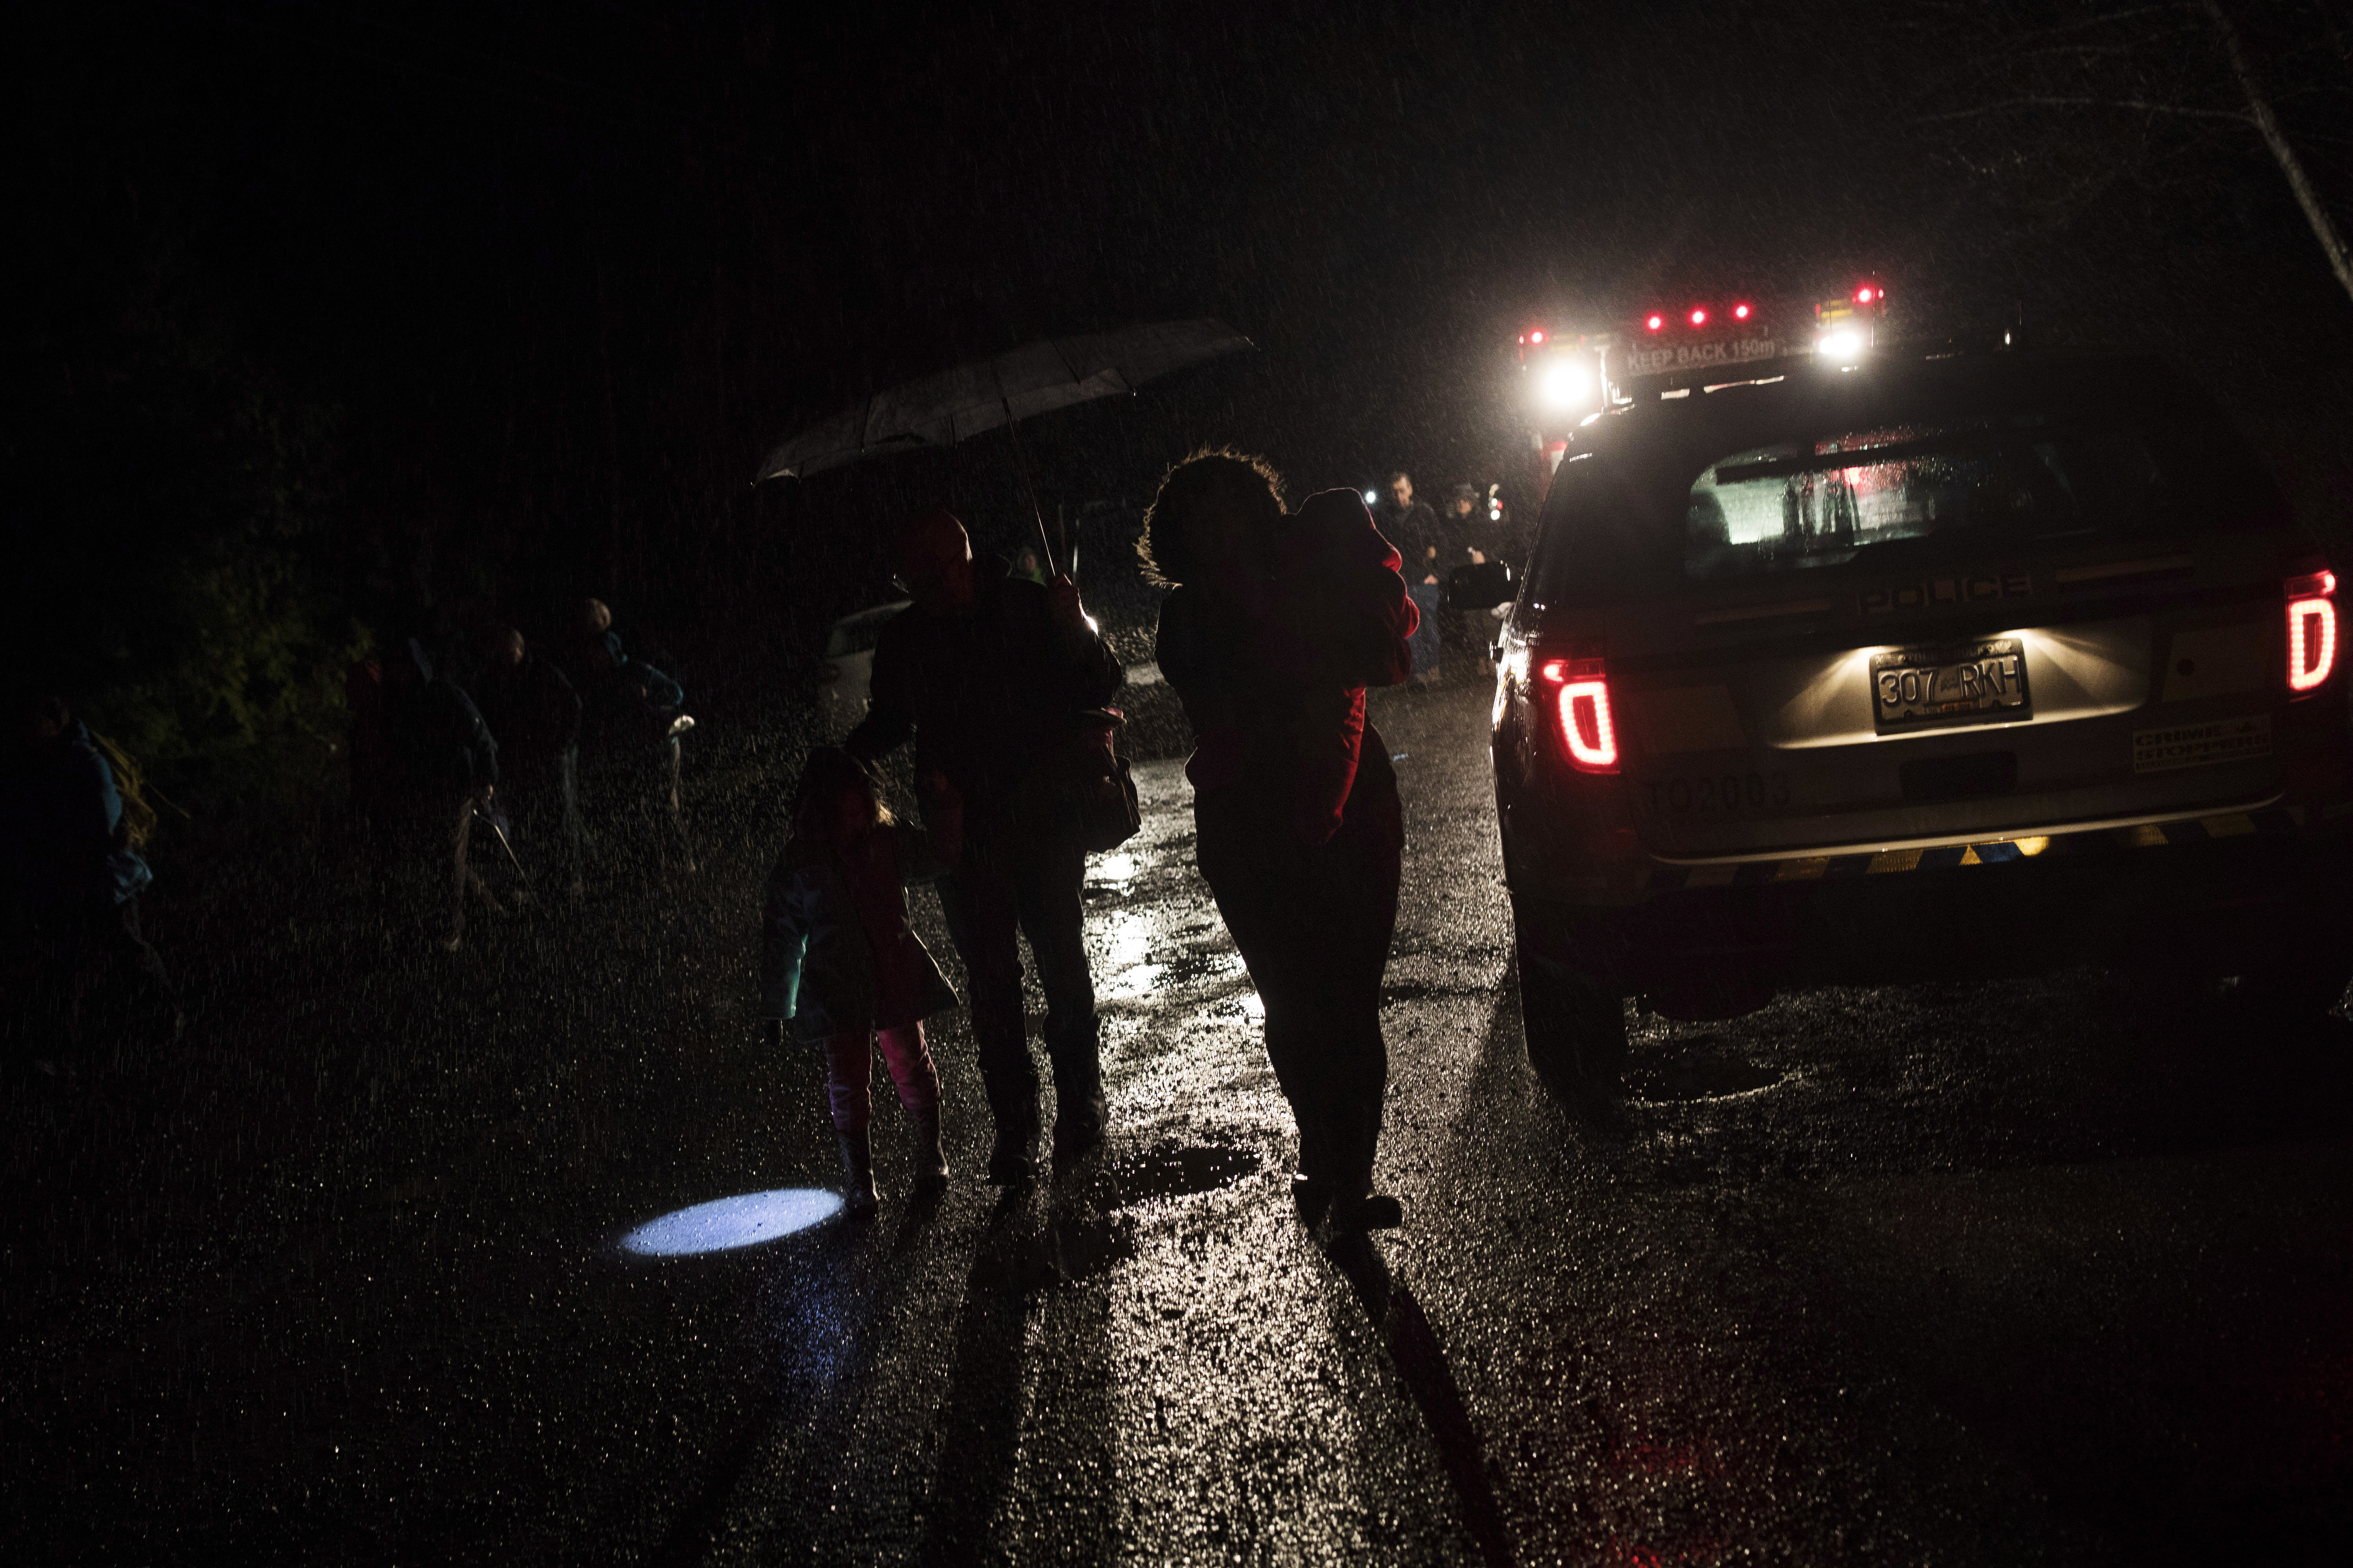 Tofino residents and visitors leave the community center after the tsunami warning ends, in Tofino, British Columbia